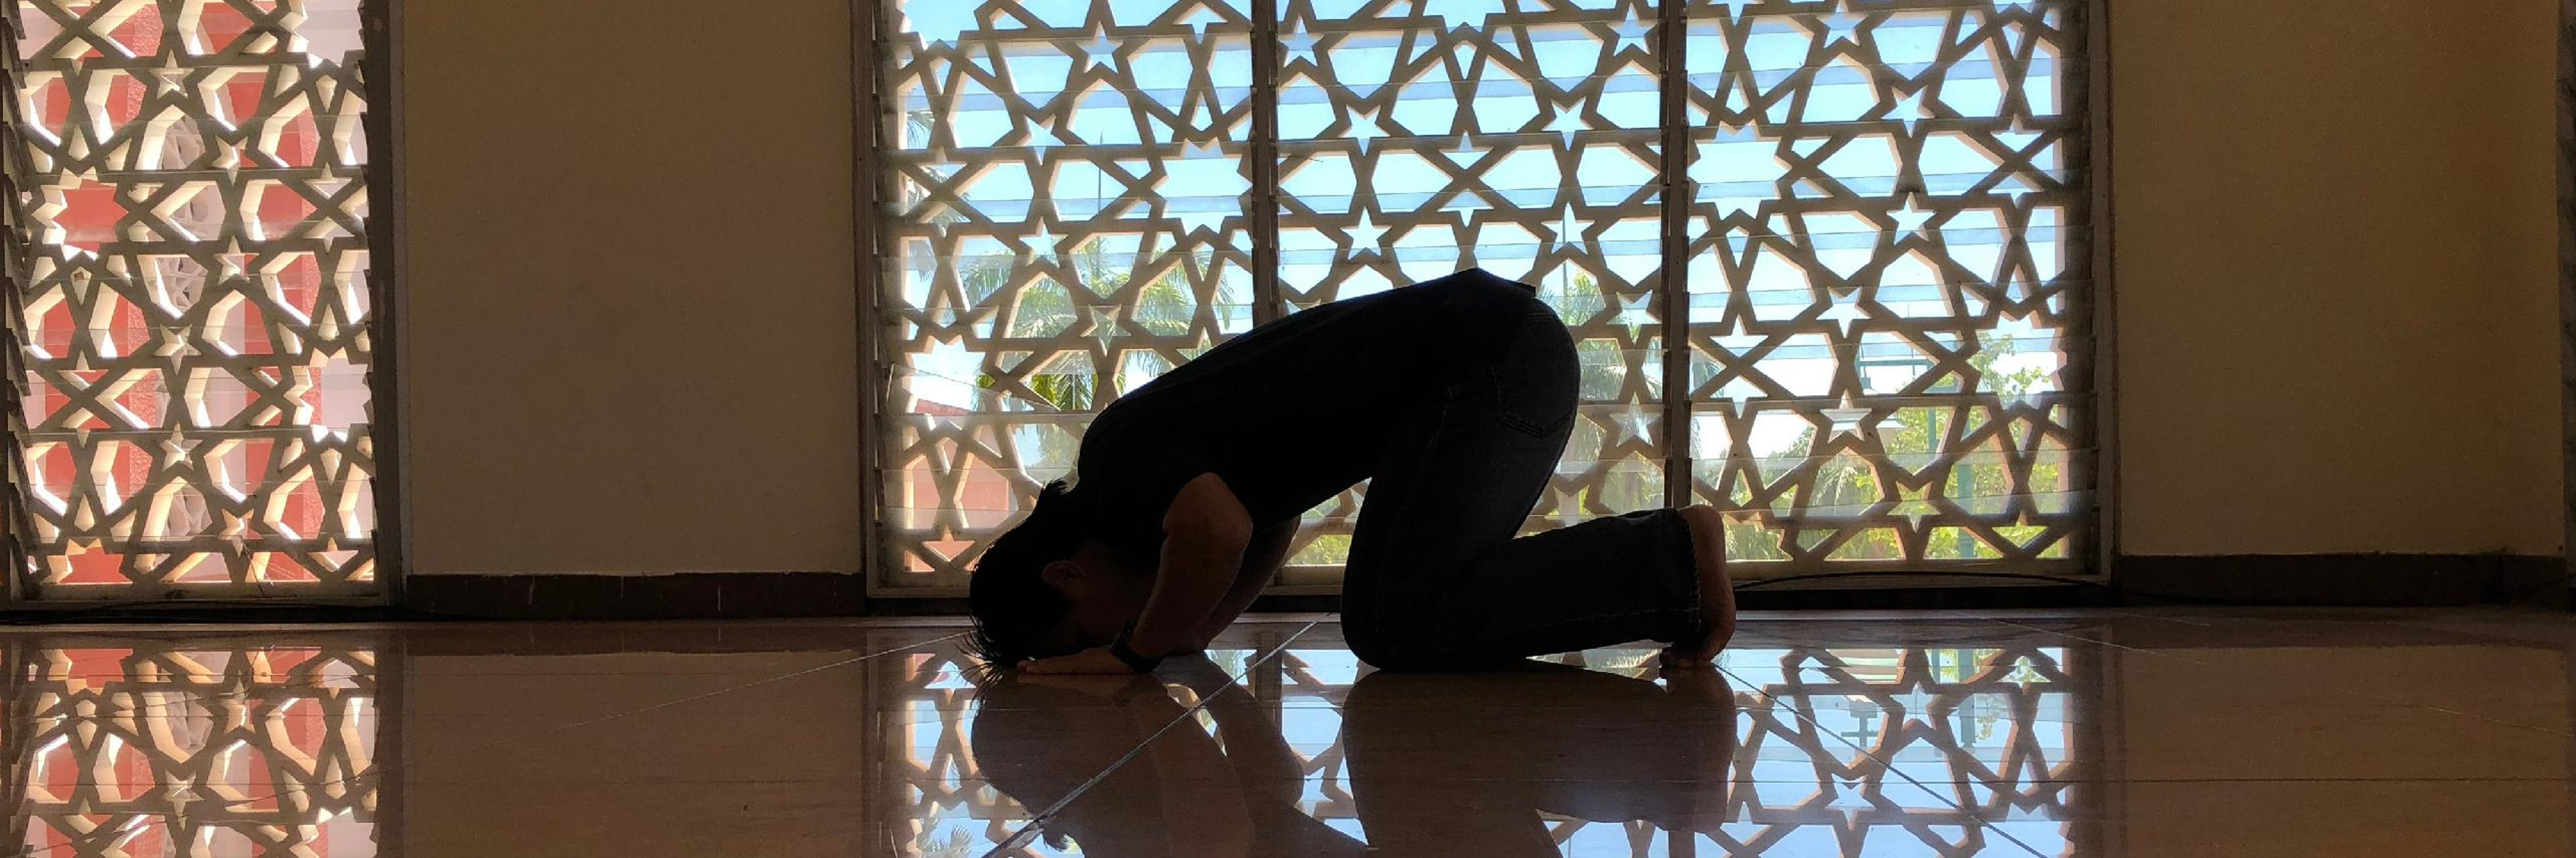 Repentance as a Way of Life: Islam, Spirituality, & Practice